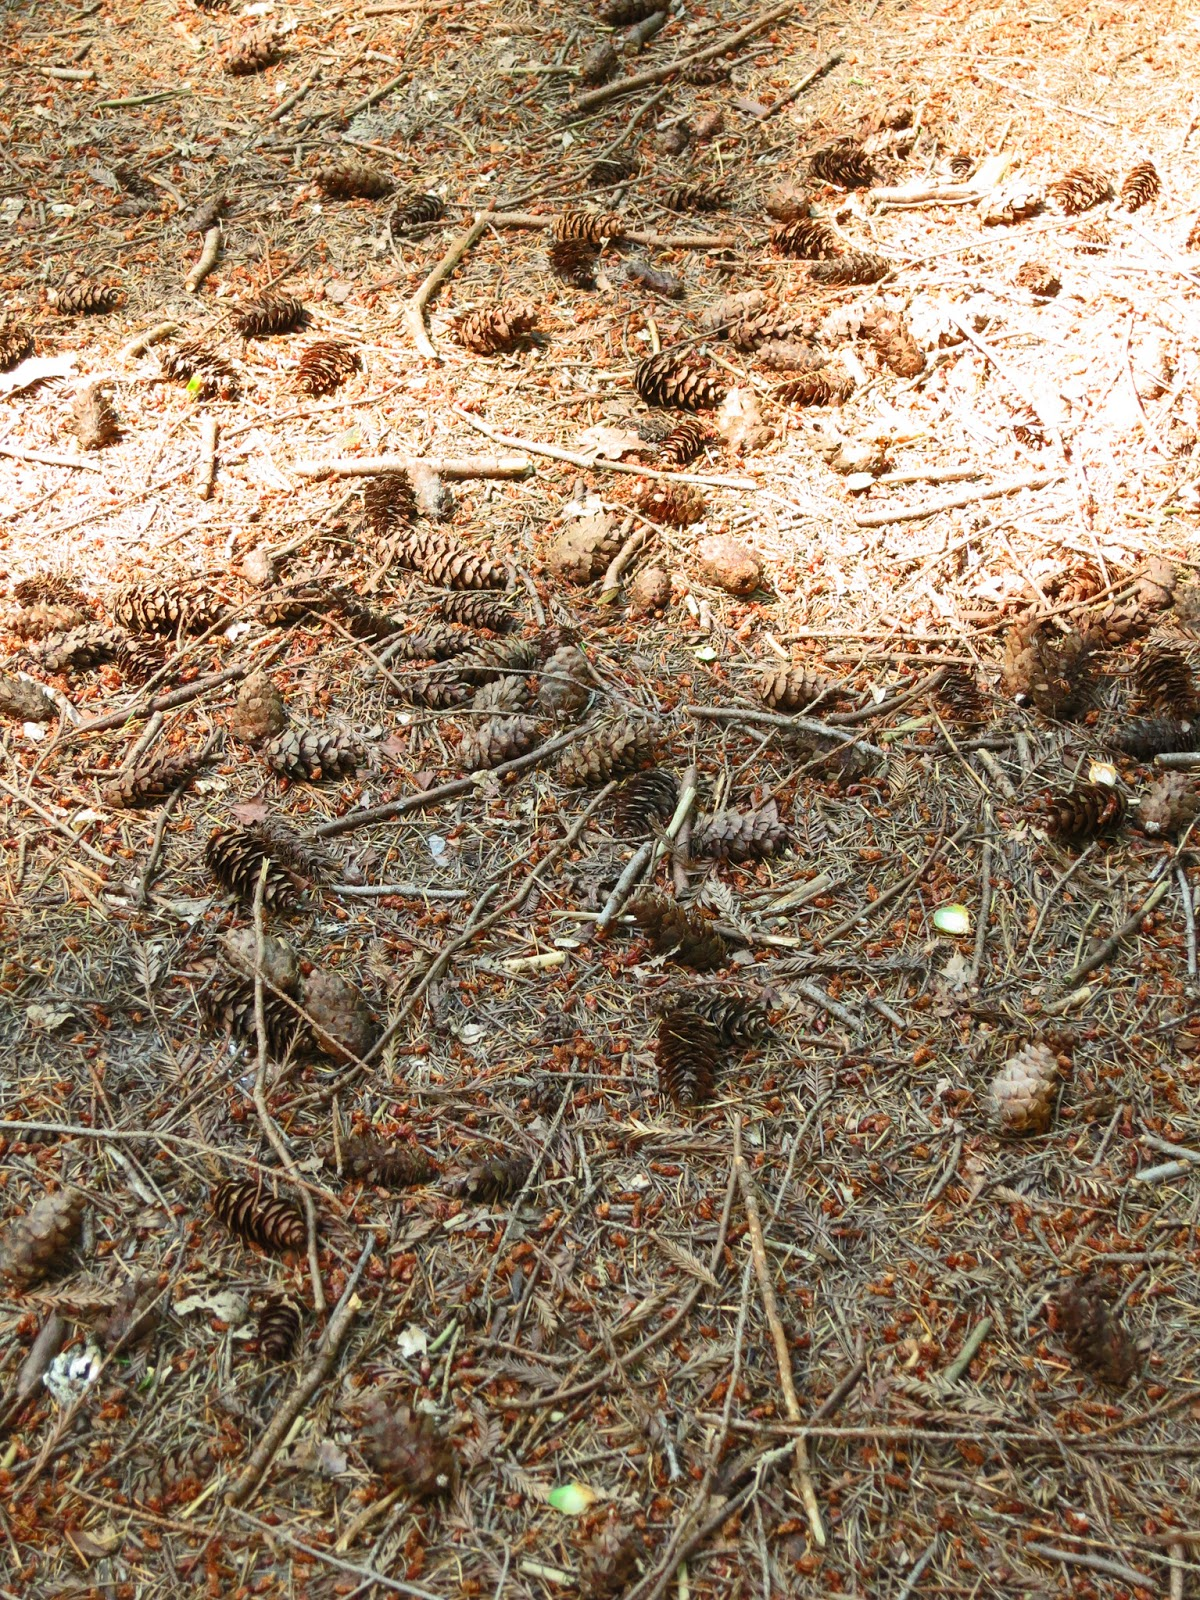 Ground scattered with cones and twigs in mixed light and shade.